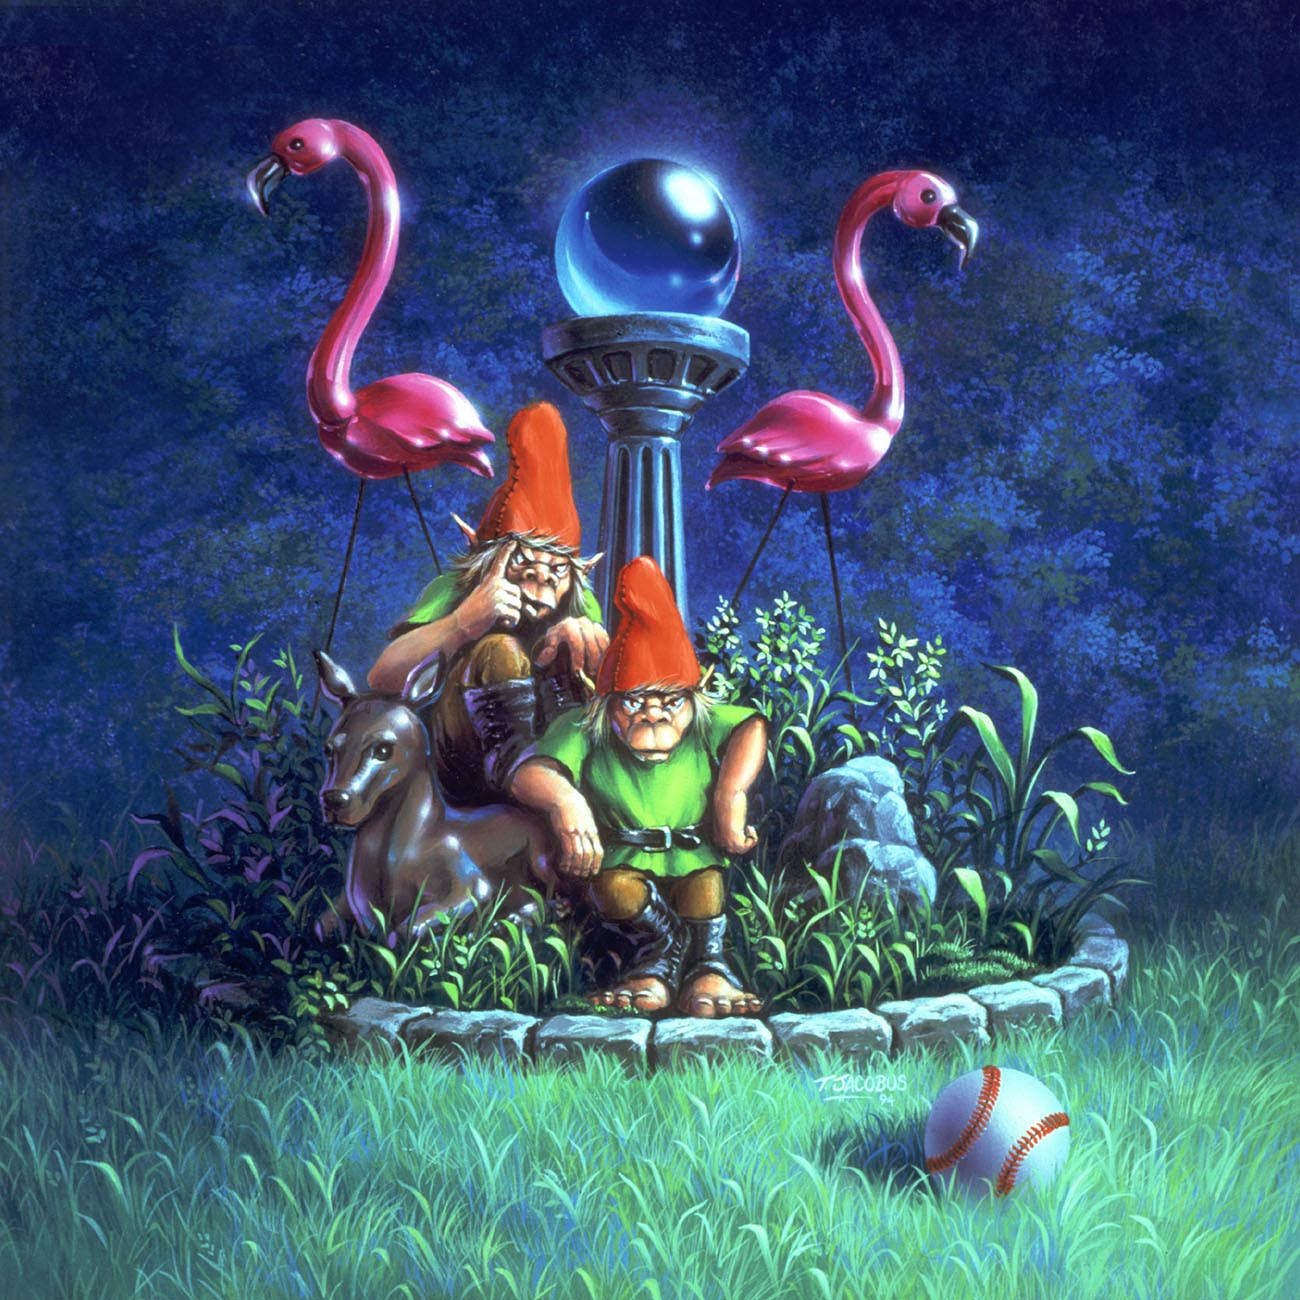 34 – Revenge of the Lawn Gnomes